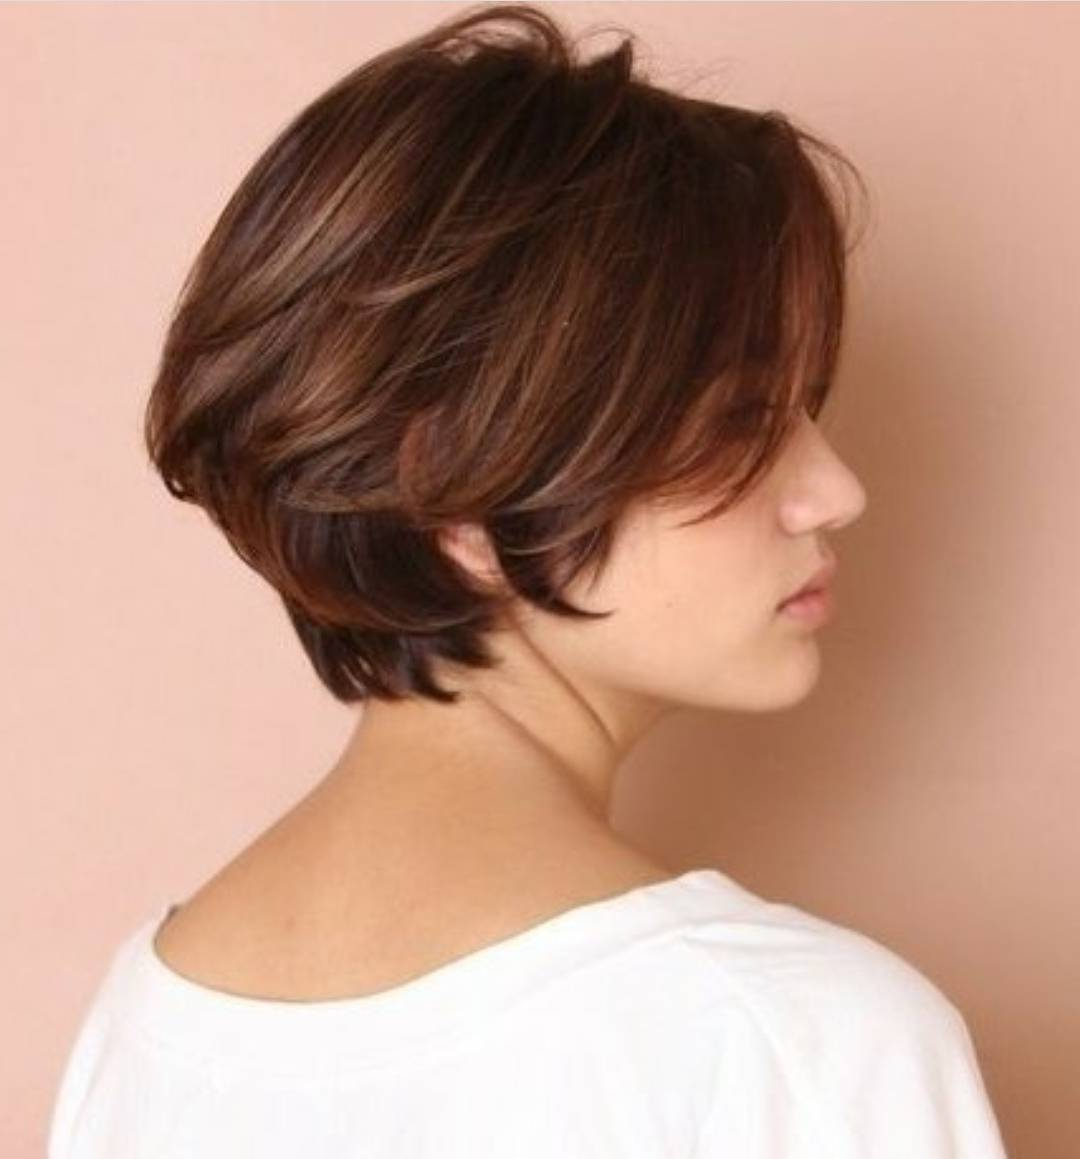 10 Chic Short Bob Haircuts That Balance Your Face Shape! – Short For Chic Short Hair Cuts (View 2 of 25)